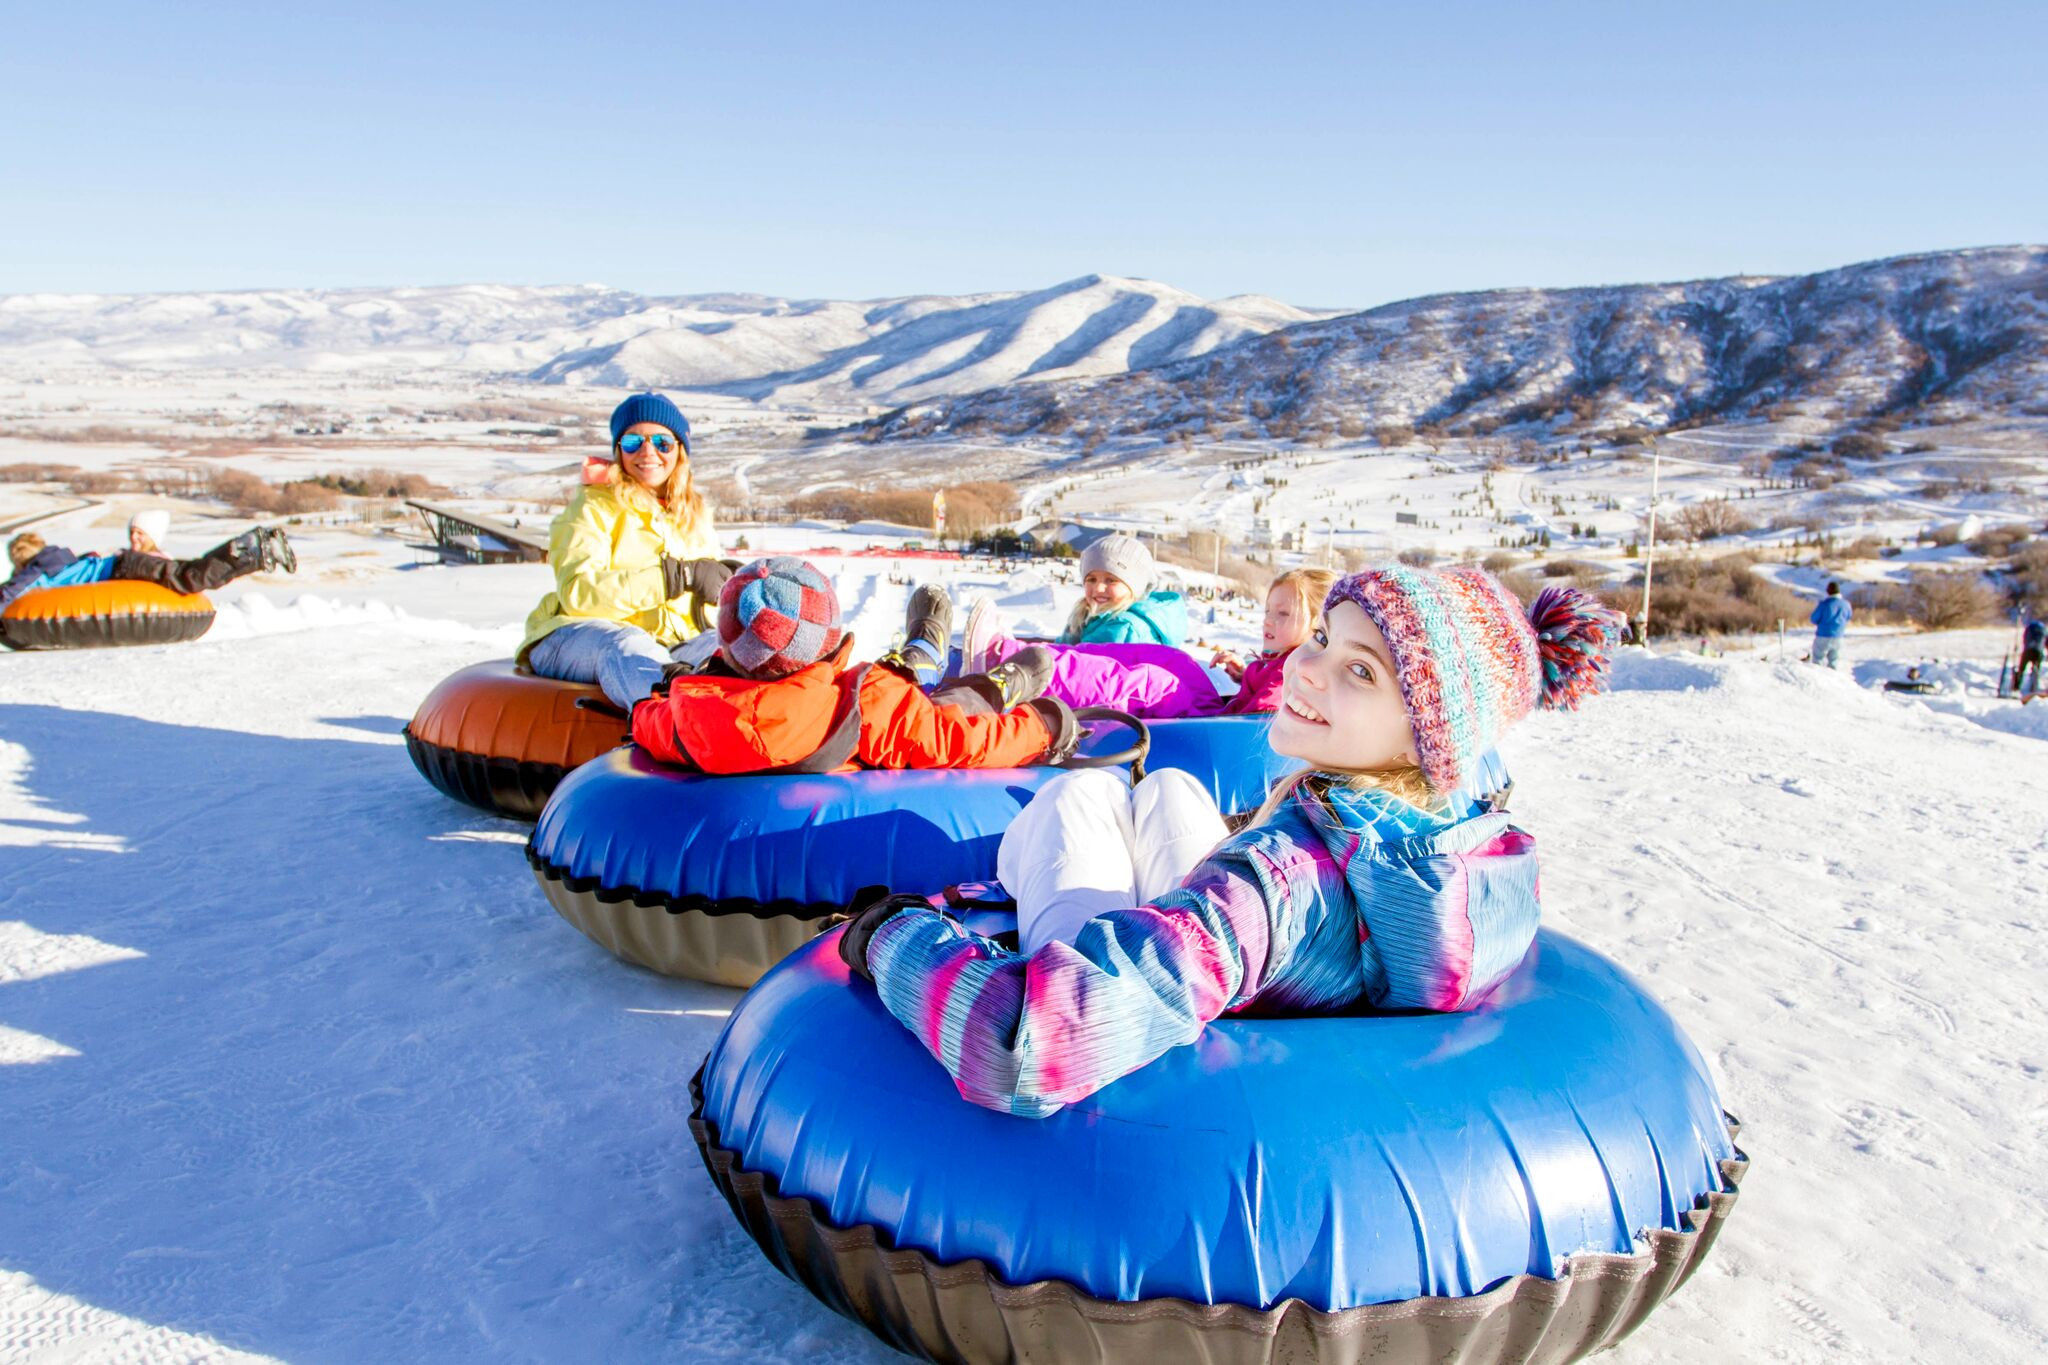 Tubing at Soldier Hollow